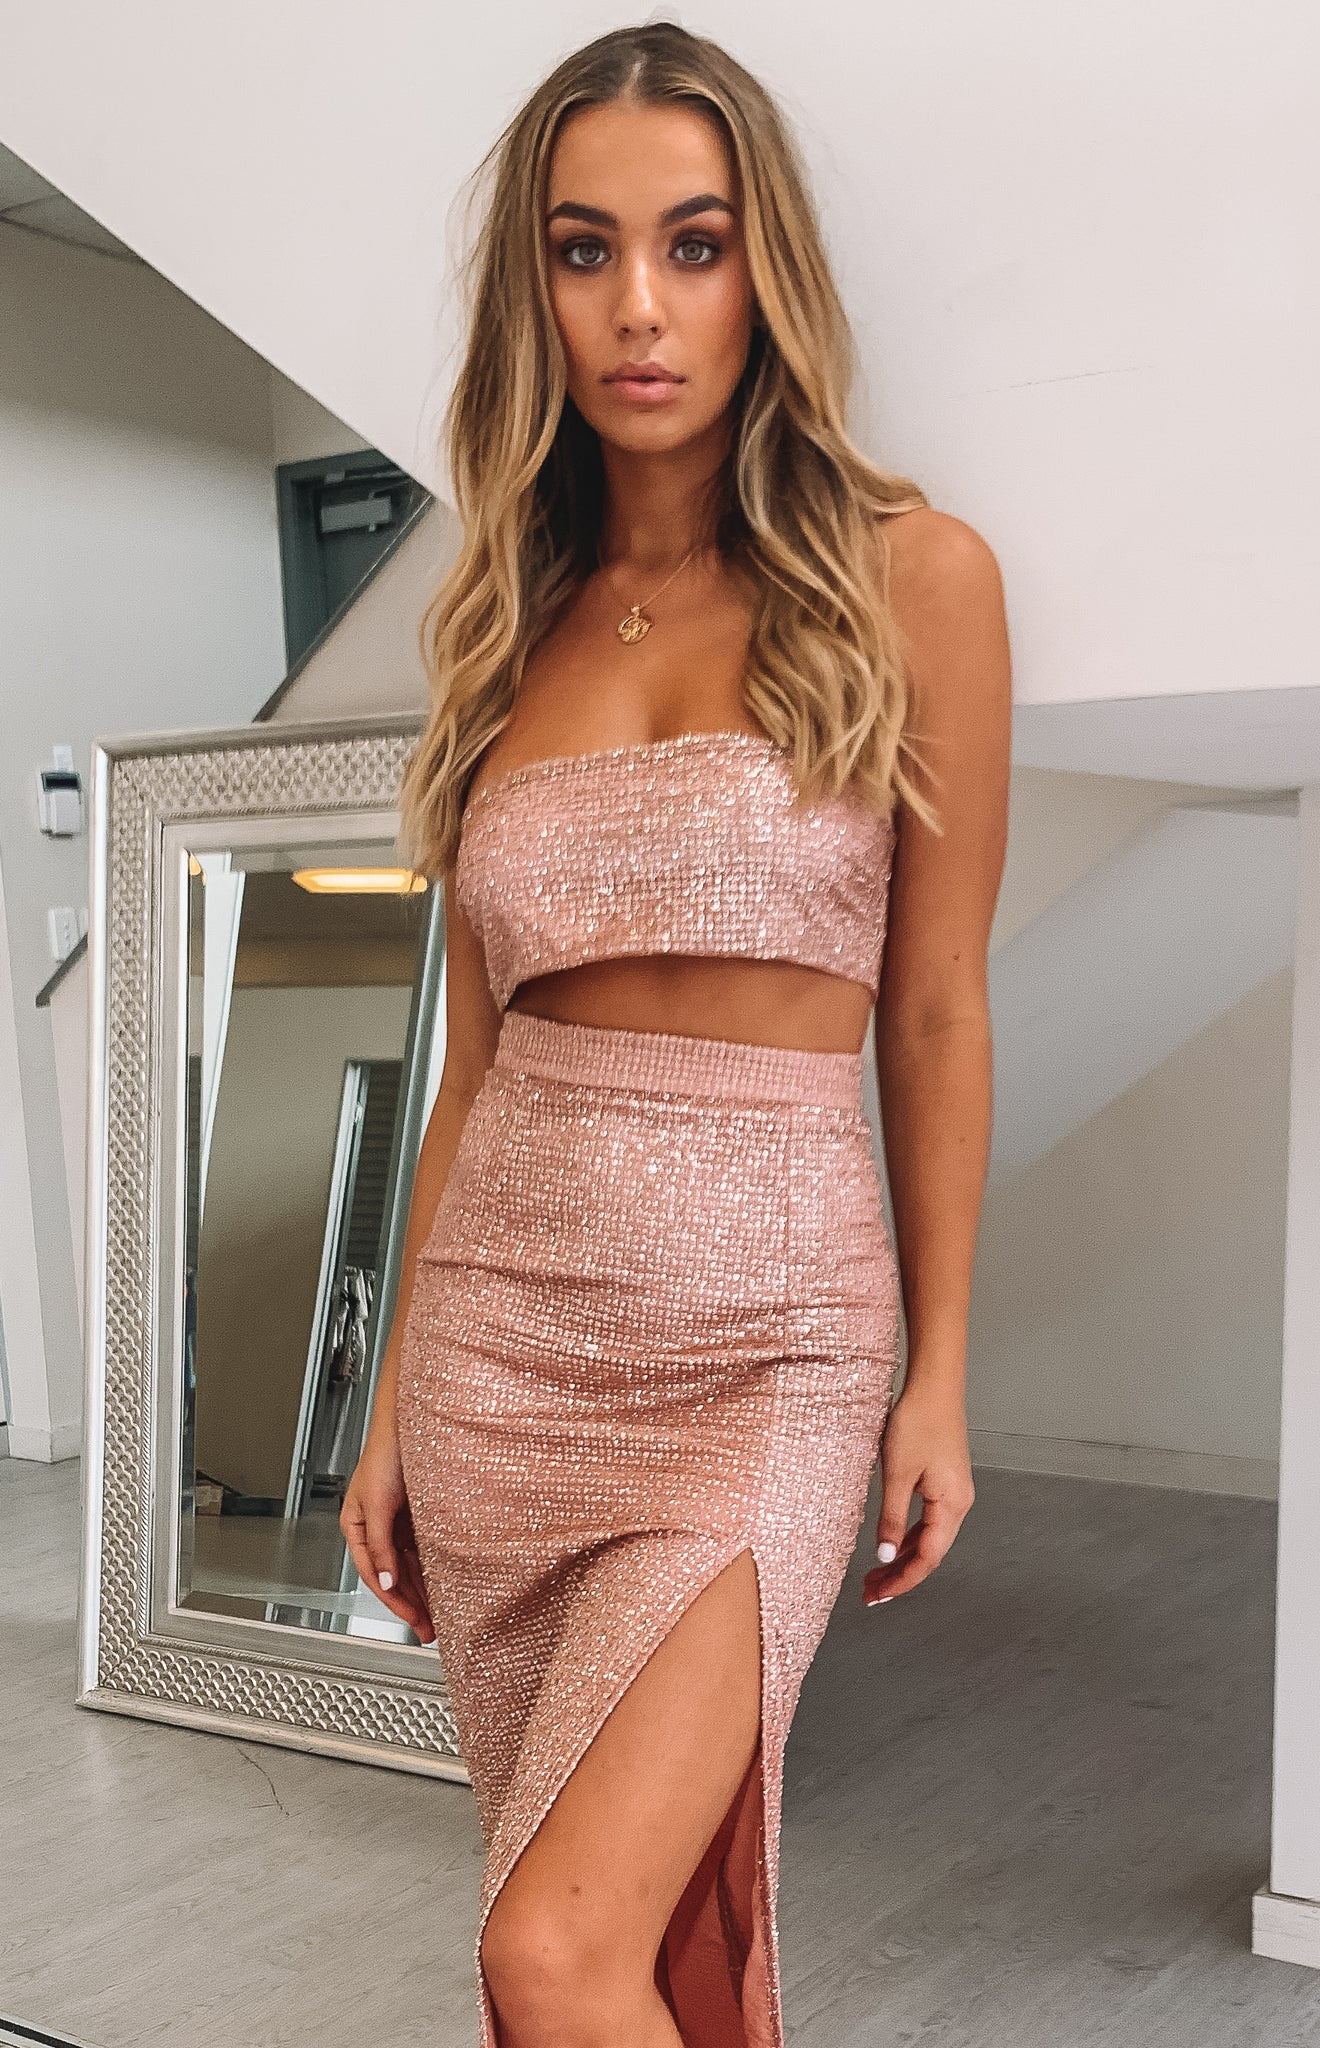 https://files.beginningboutique.com.au/Serene+Crop+Rose+Gold+Sparkle+and+Ariana+Maxi+Skirt+Rose+Gold+Sparkle.mp4